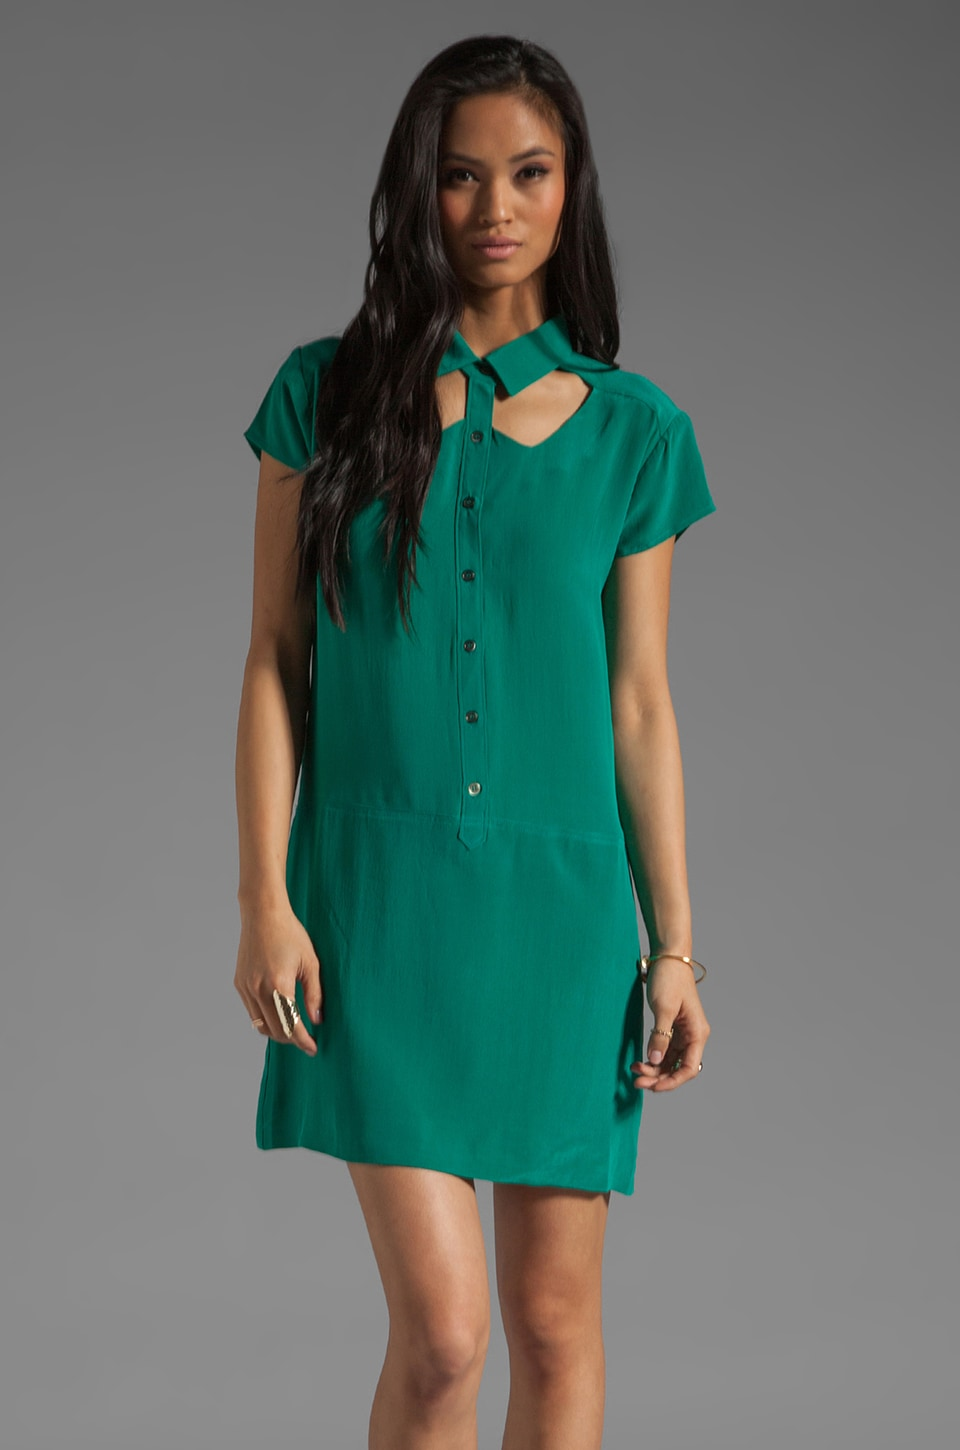 Funktional Software Cutout Collar Dress in Emerald